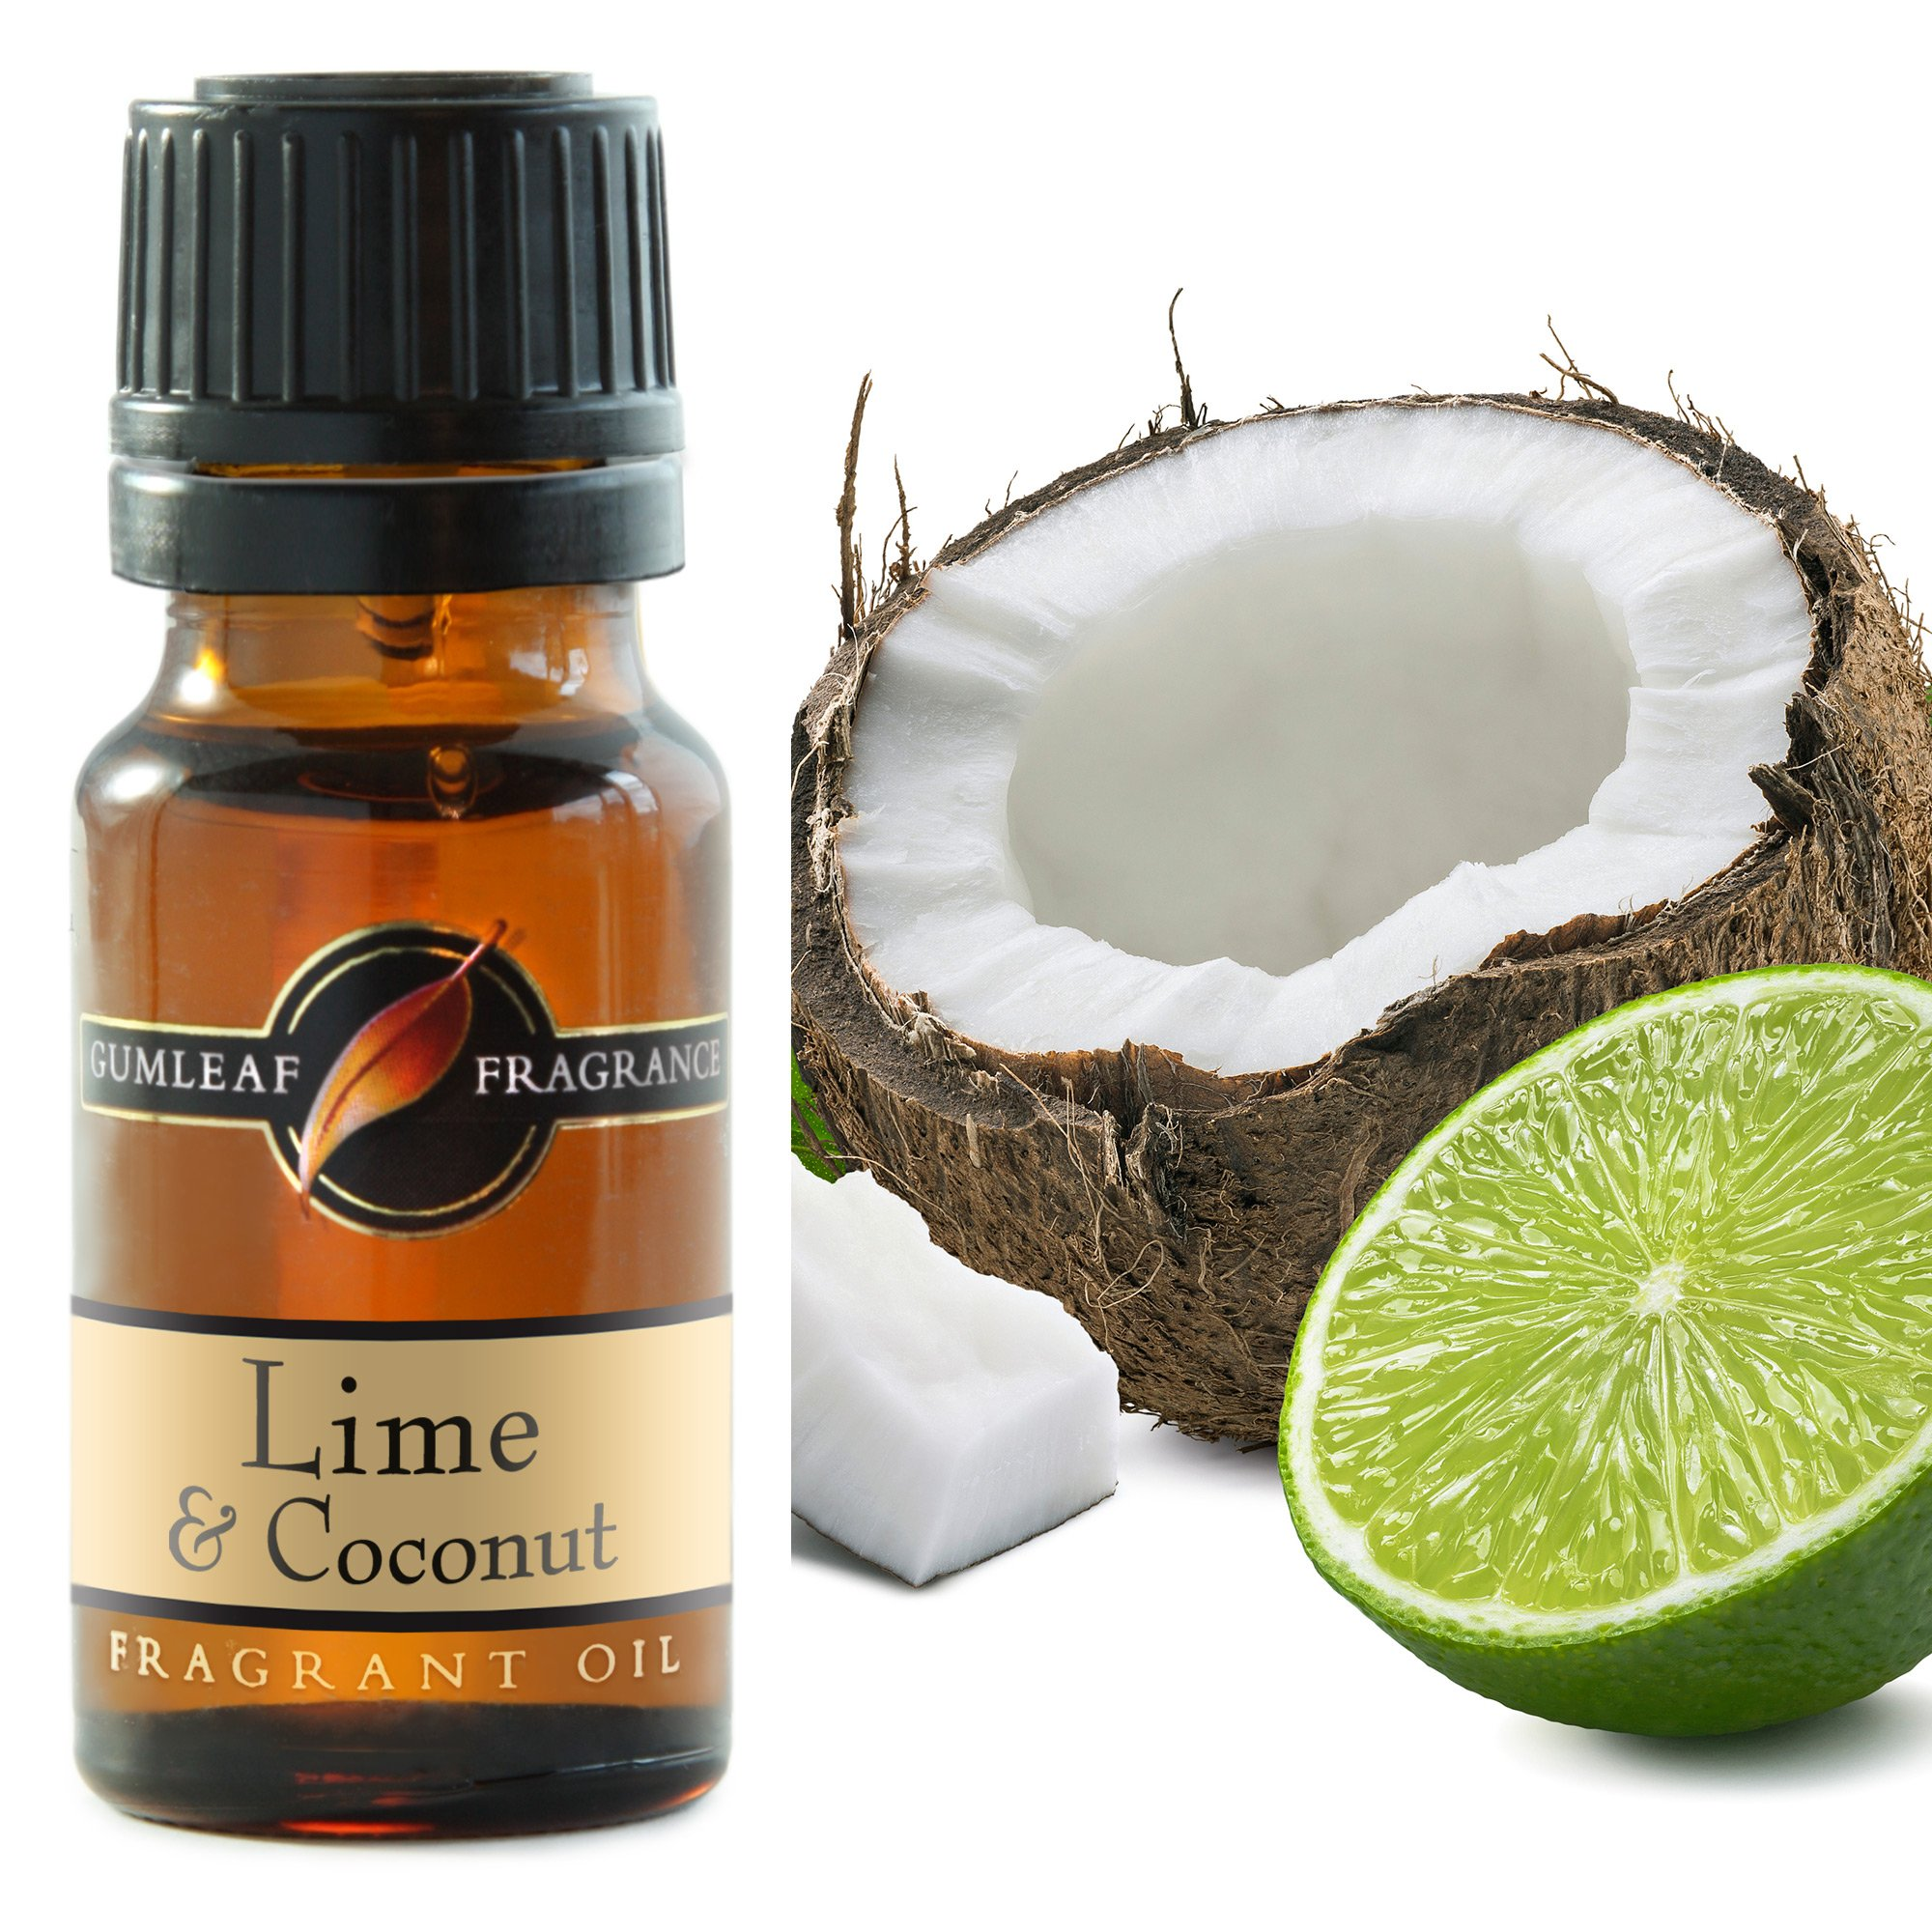 ... OILS GUMLEAF FRAGRANCE OILS KAFFIR LIME & COCONUT FRAGRANCE OIL